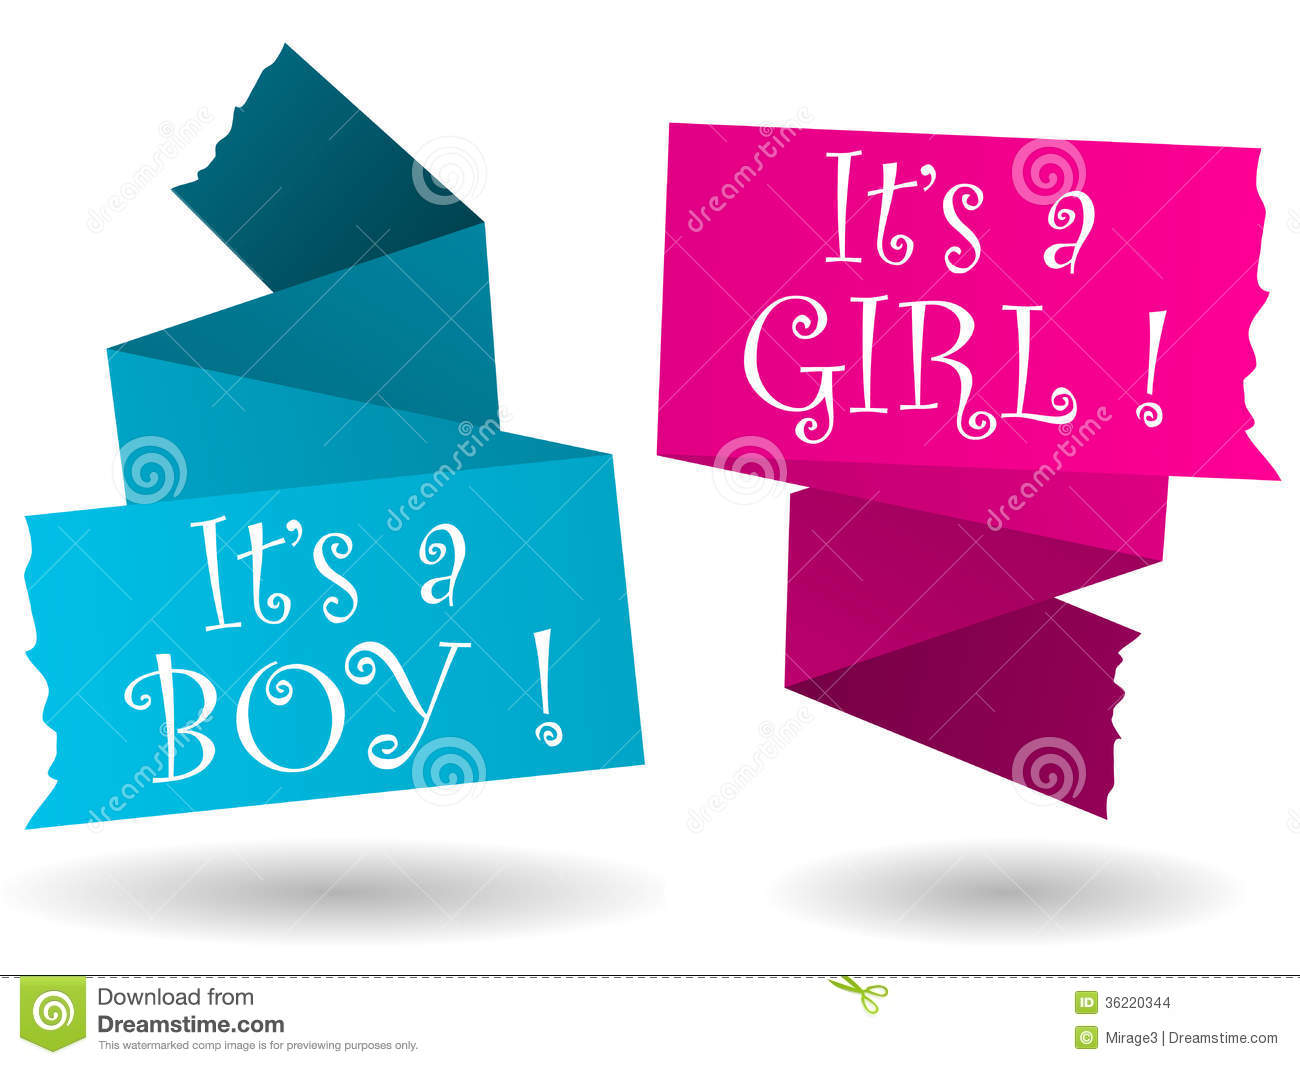 blue as in boy pink as in girl Any expectant mother or father these days is doubtless aware that items designed for baby girls are commonly pink, and those meant for baby boys are blue.